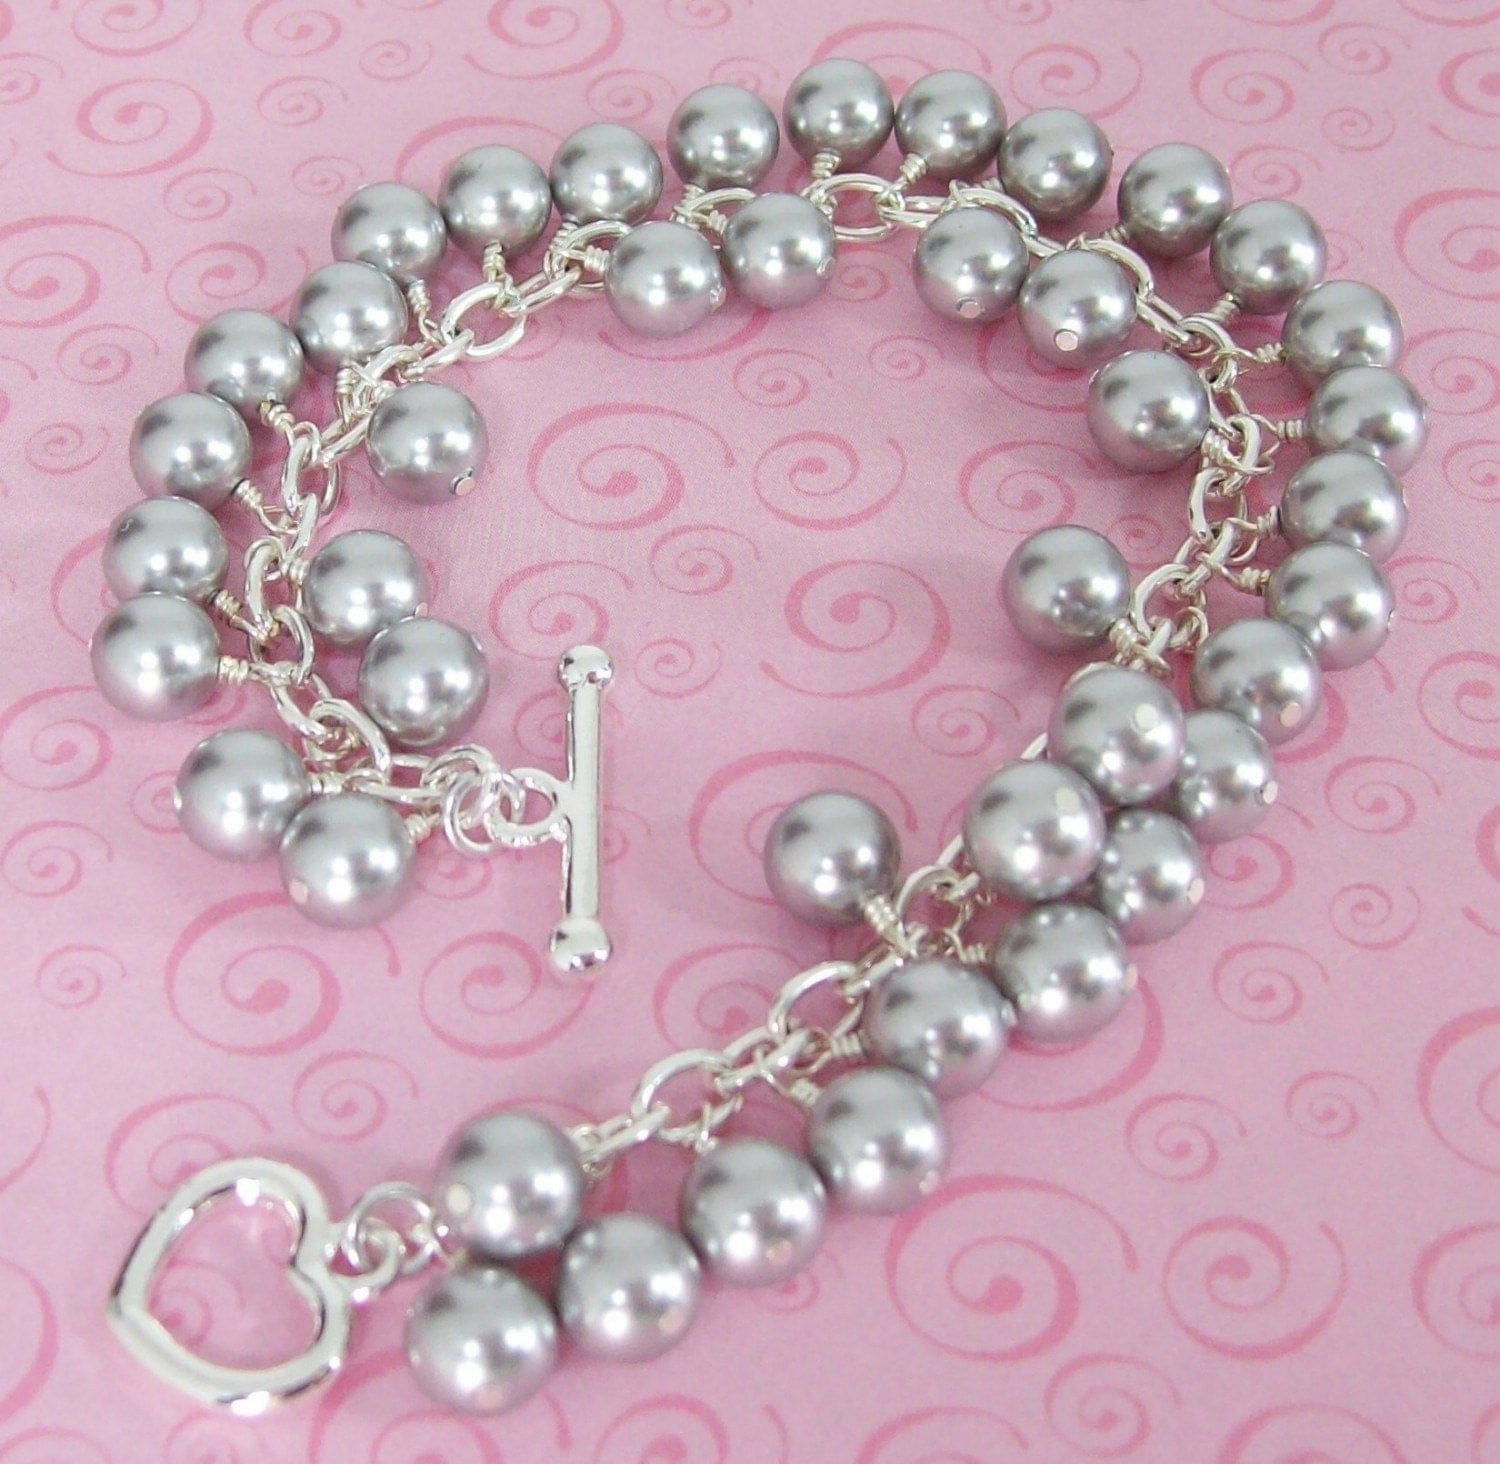 Light Grey Swarovski Pearl Charm Bracelet by shannonsroom on Etsy